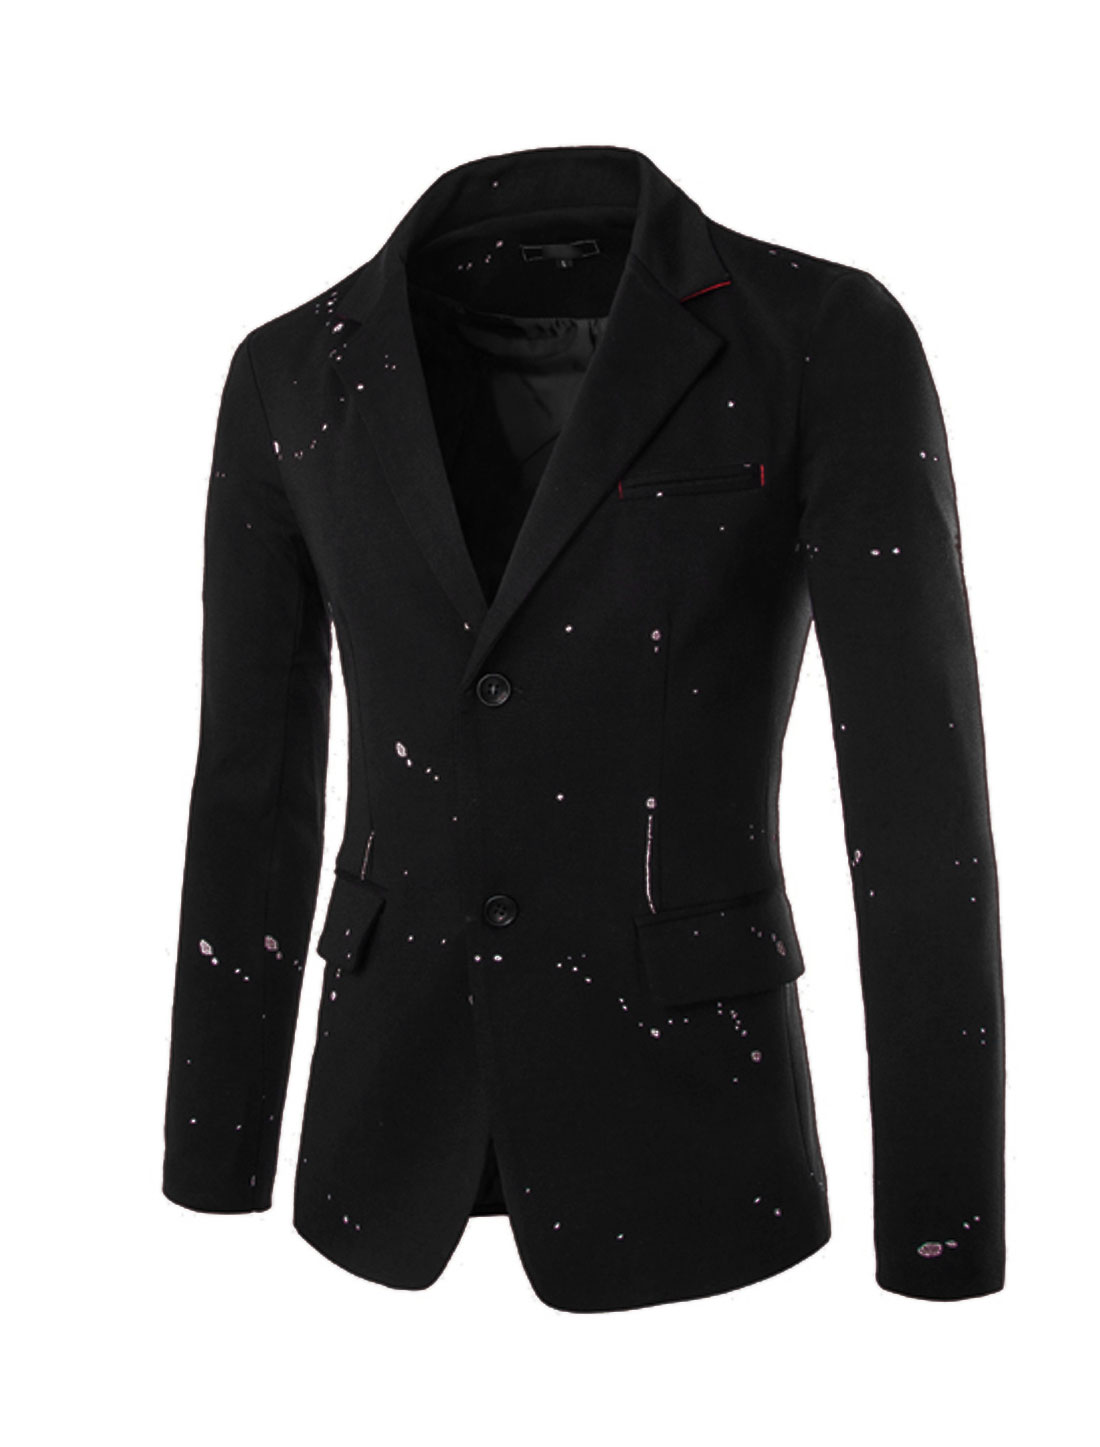 Men Long Sleeves Two Buttons Closure Front Blazer Black M